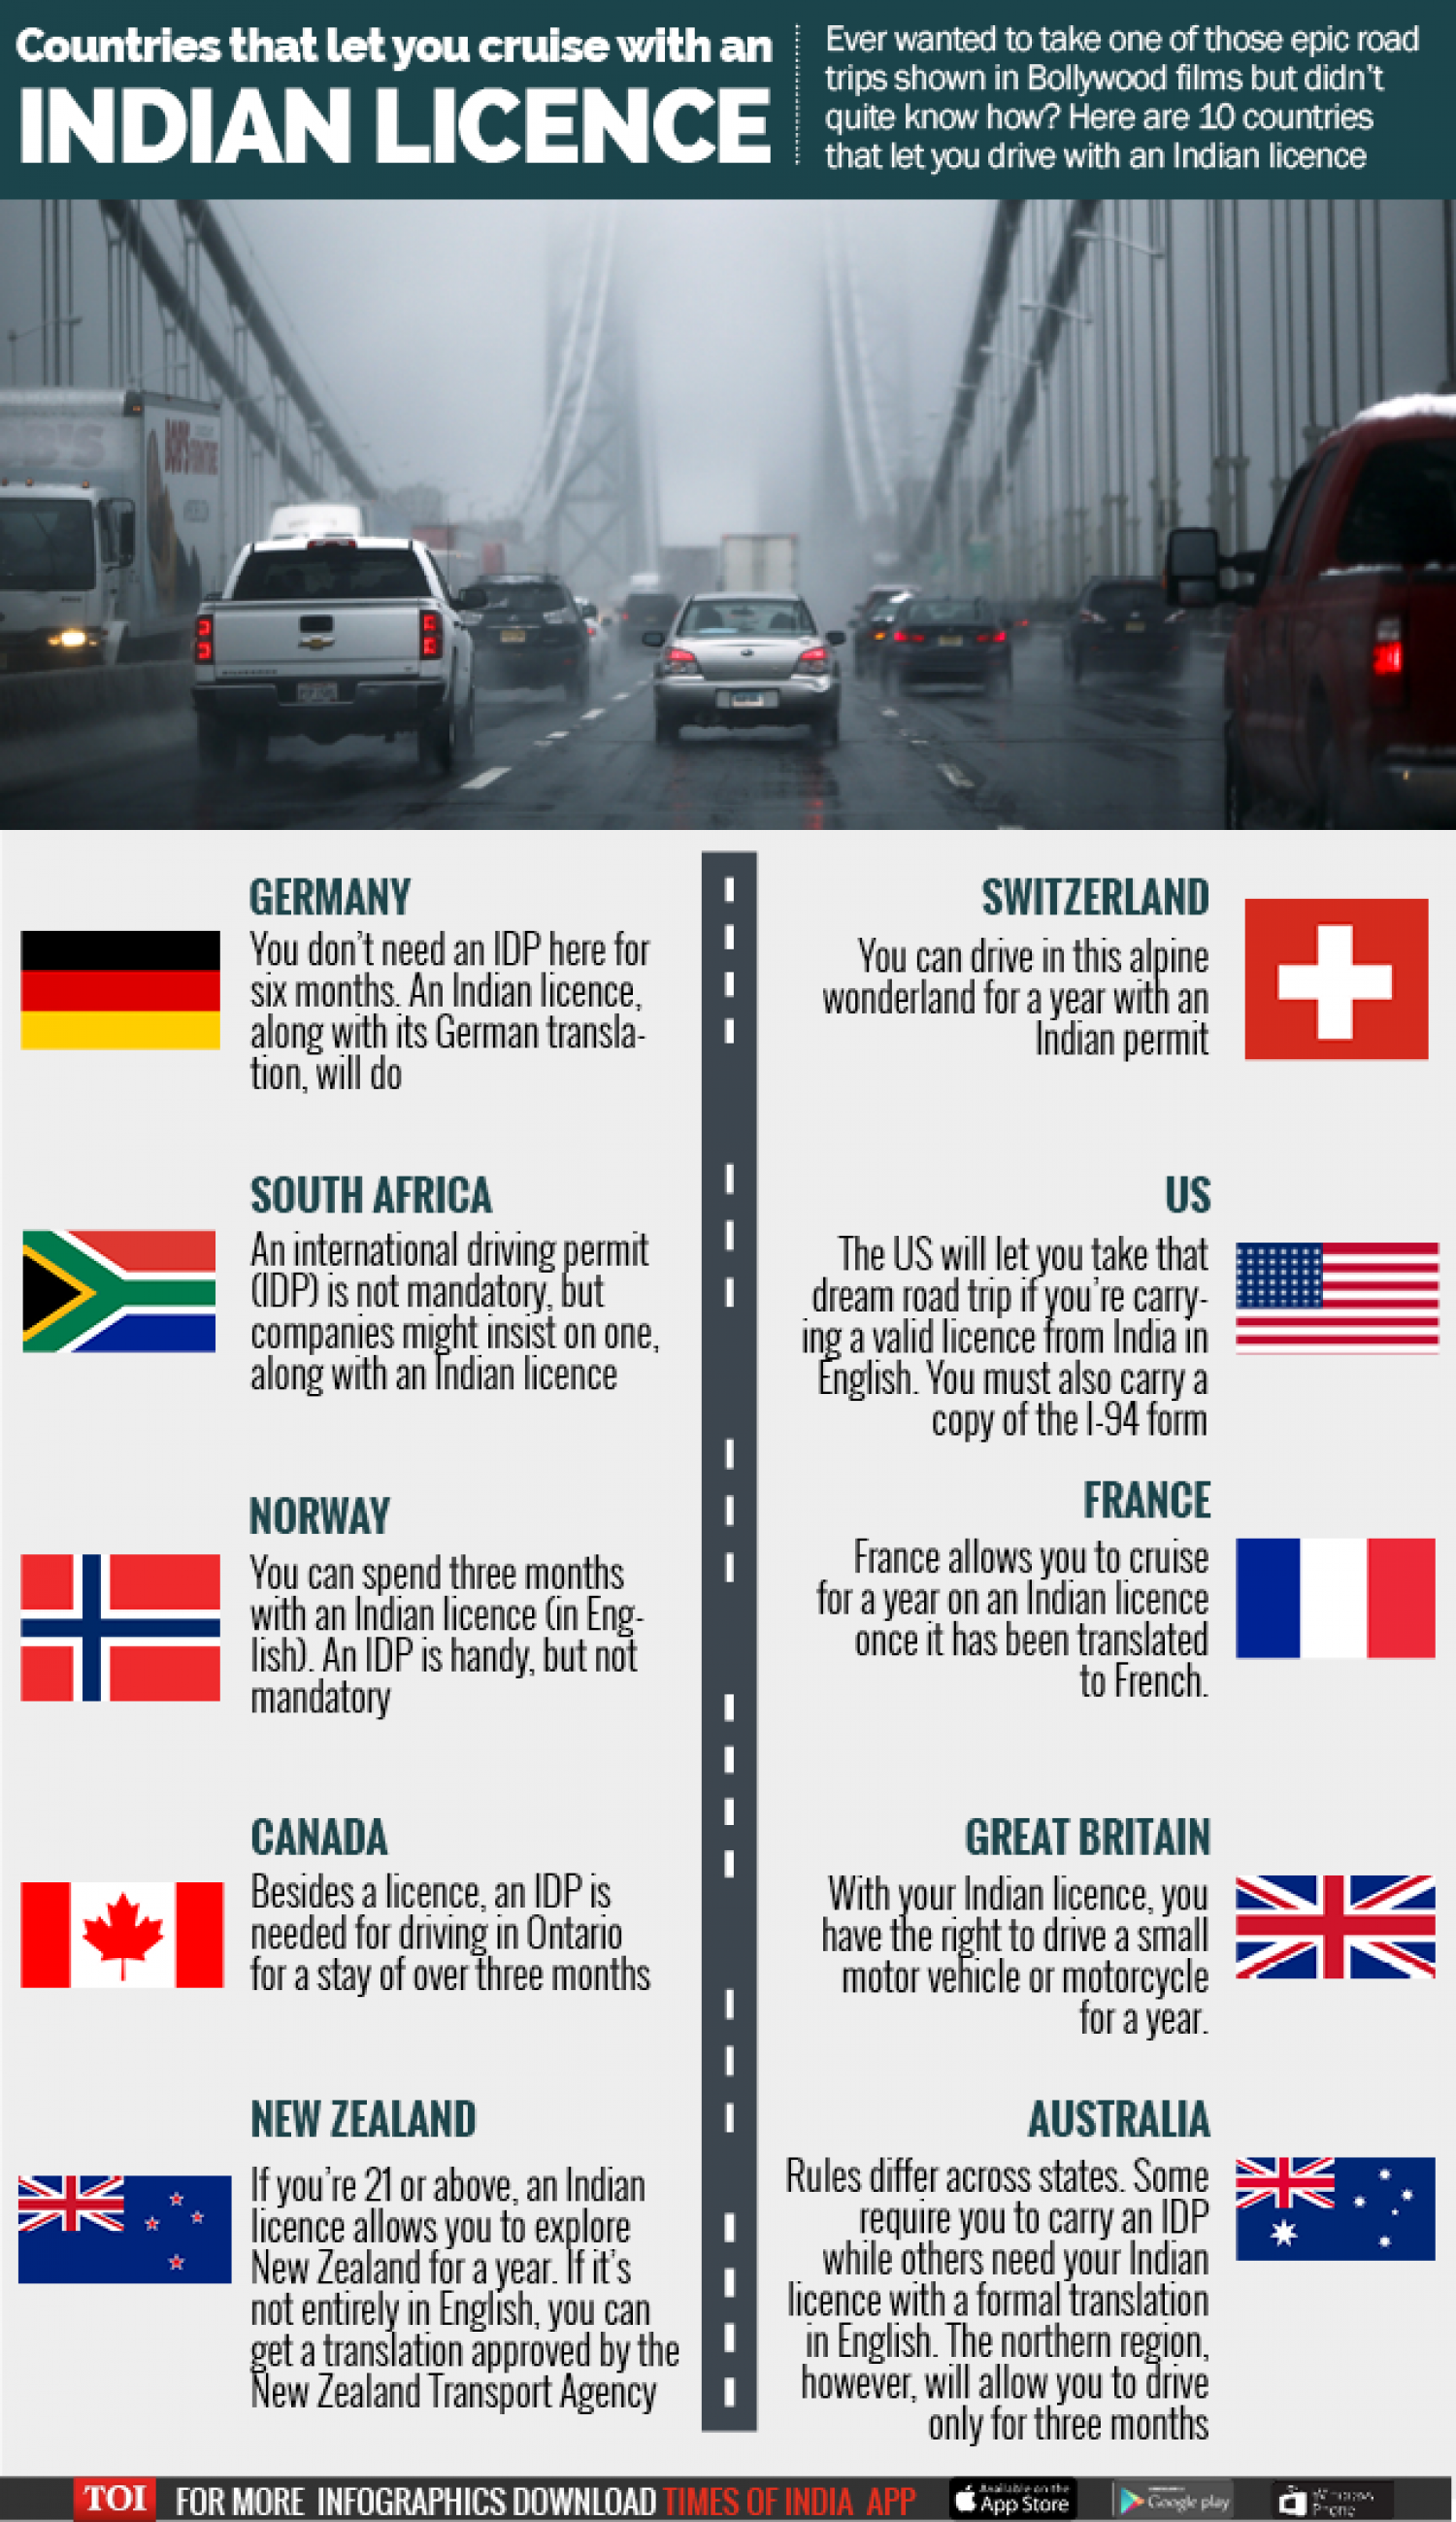 10 countries that let you drive with an Indian licence Infographic